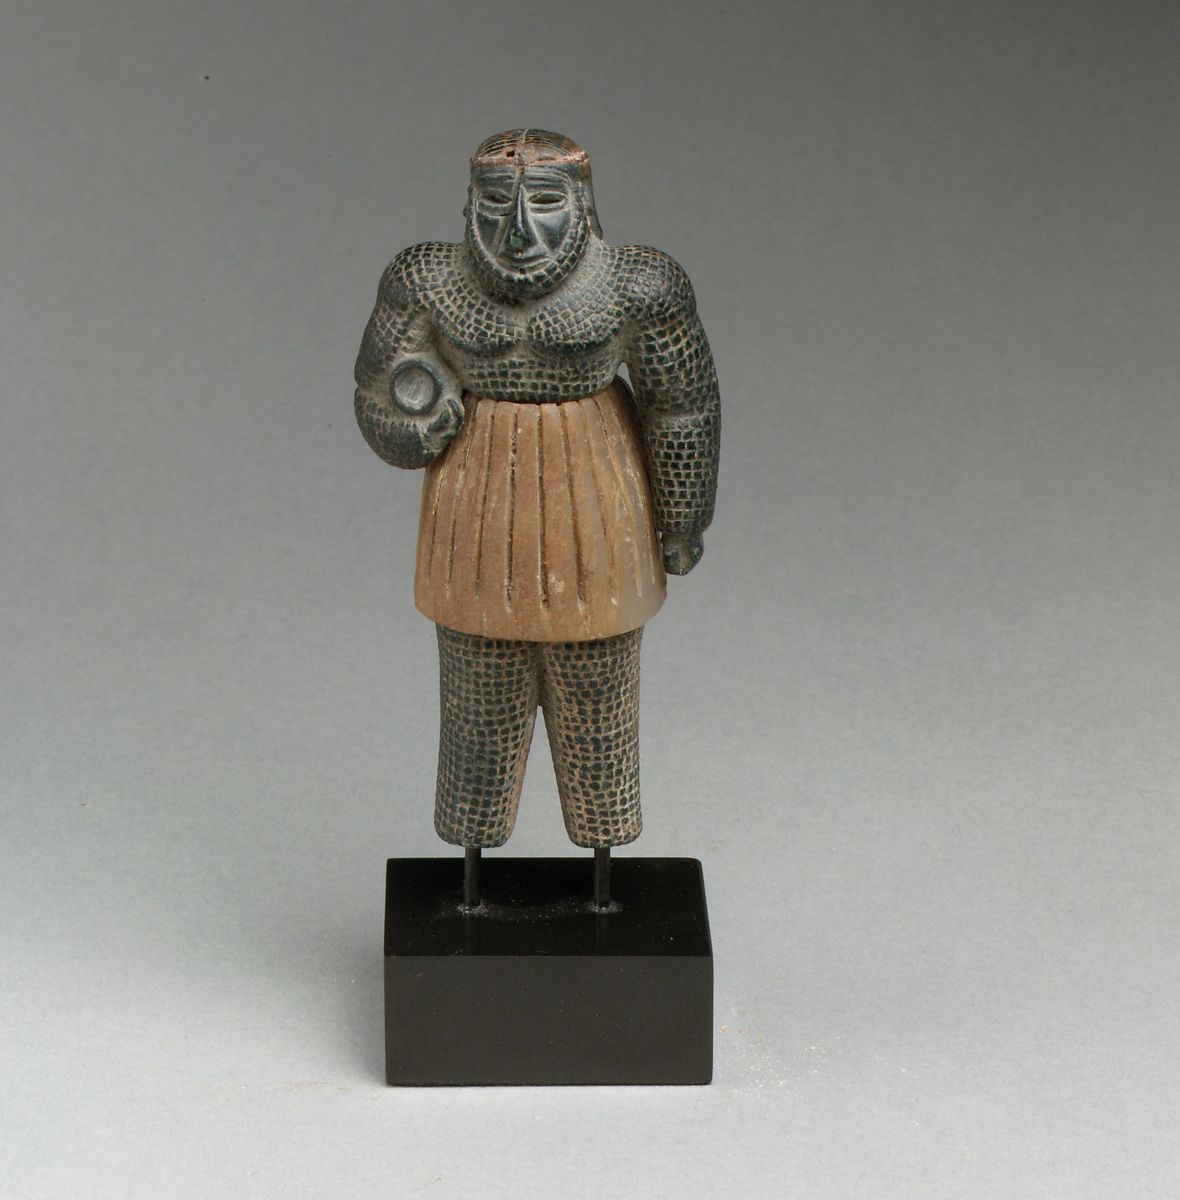 Monstrous male figure | Bactria-Margiana Archaeological Complex | Bronze Age | The Met